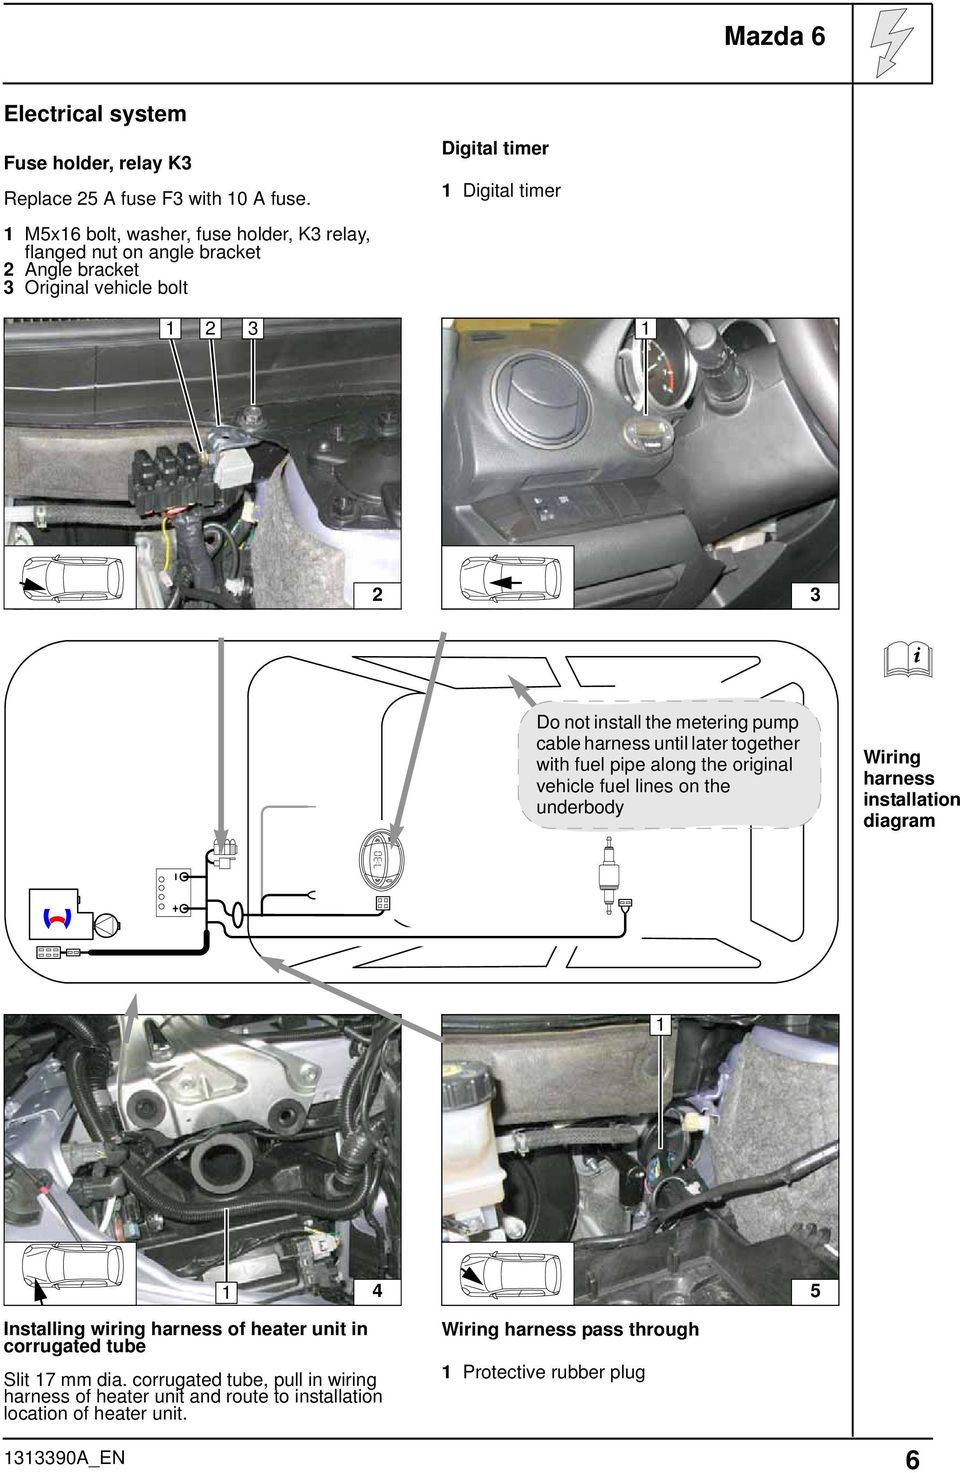 Always Follow All Webasto Installation And Repair Instructions 2004 Chevy Impala Water Pump Location Free Download Wiring Diagram The Metering Cable Harness Until Later Together With Fuel Pipe Along Original Vehicle